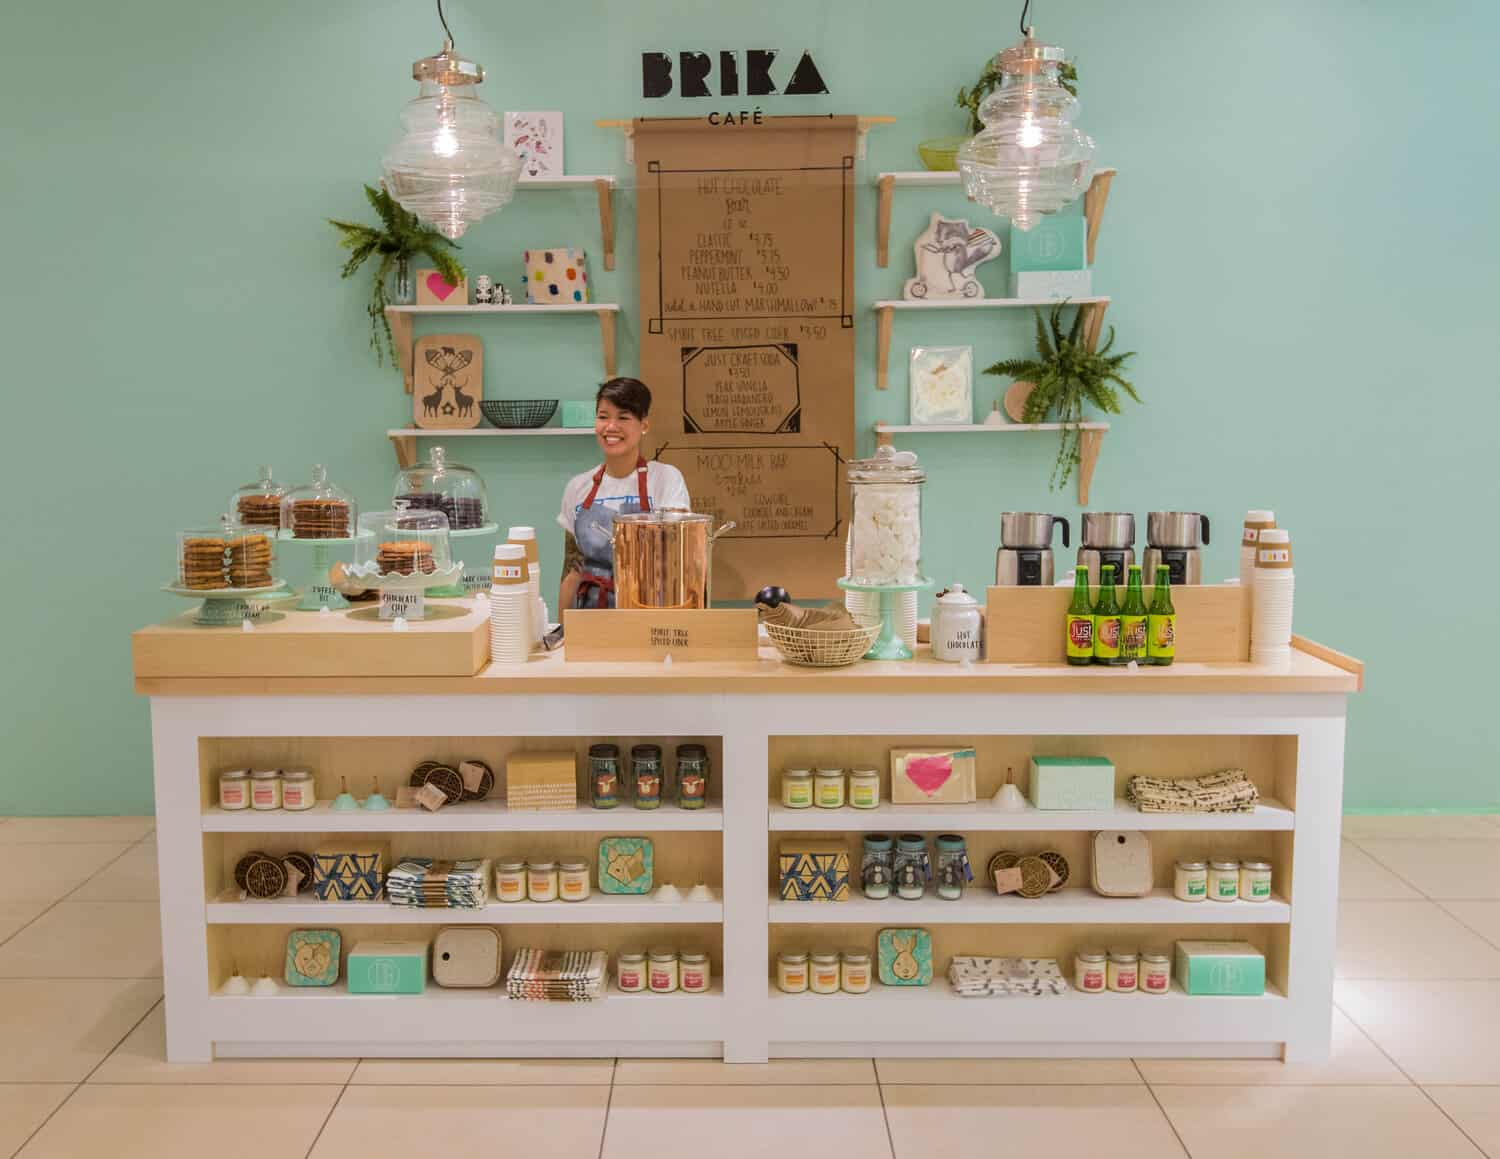 Retail After Pandemic: Jen Lee Koss, CEO of BRIKA